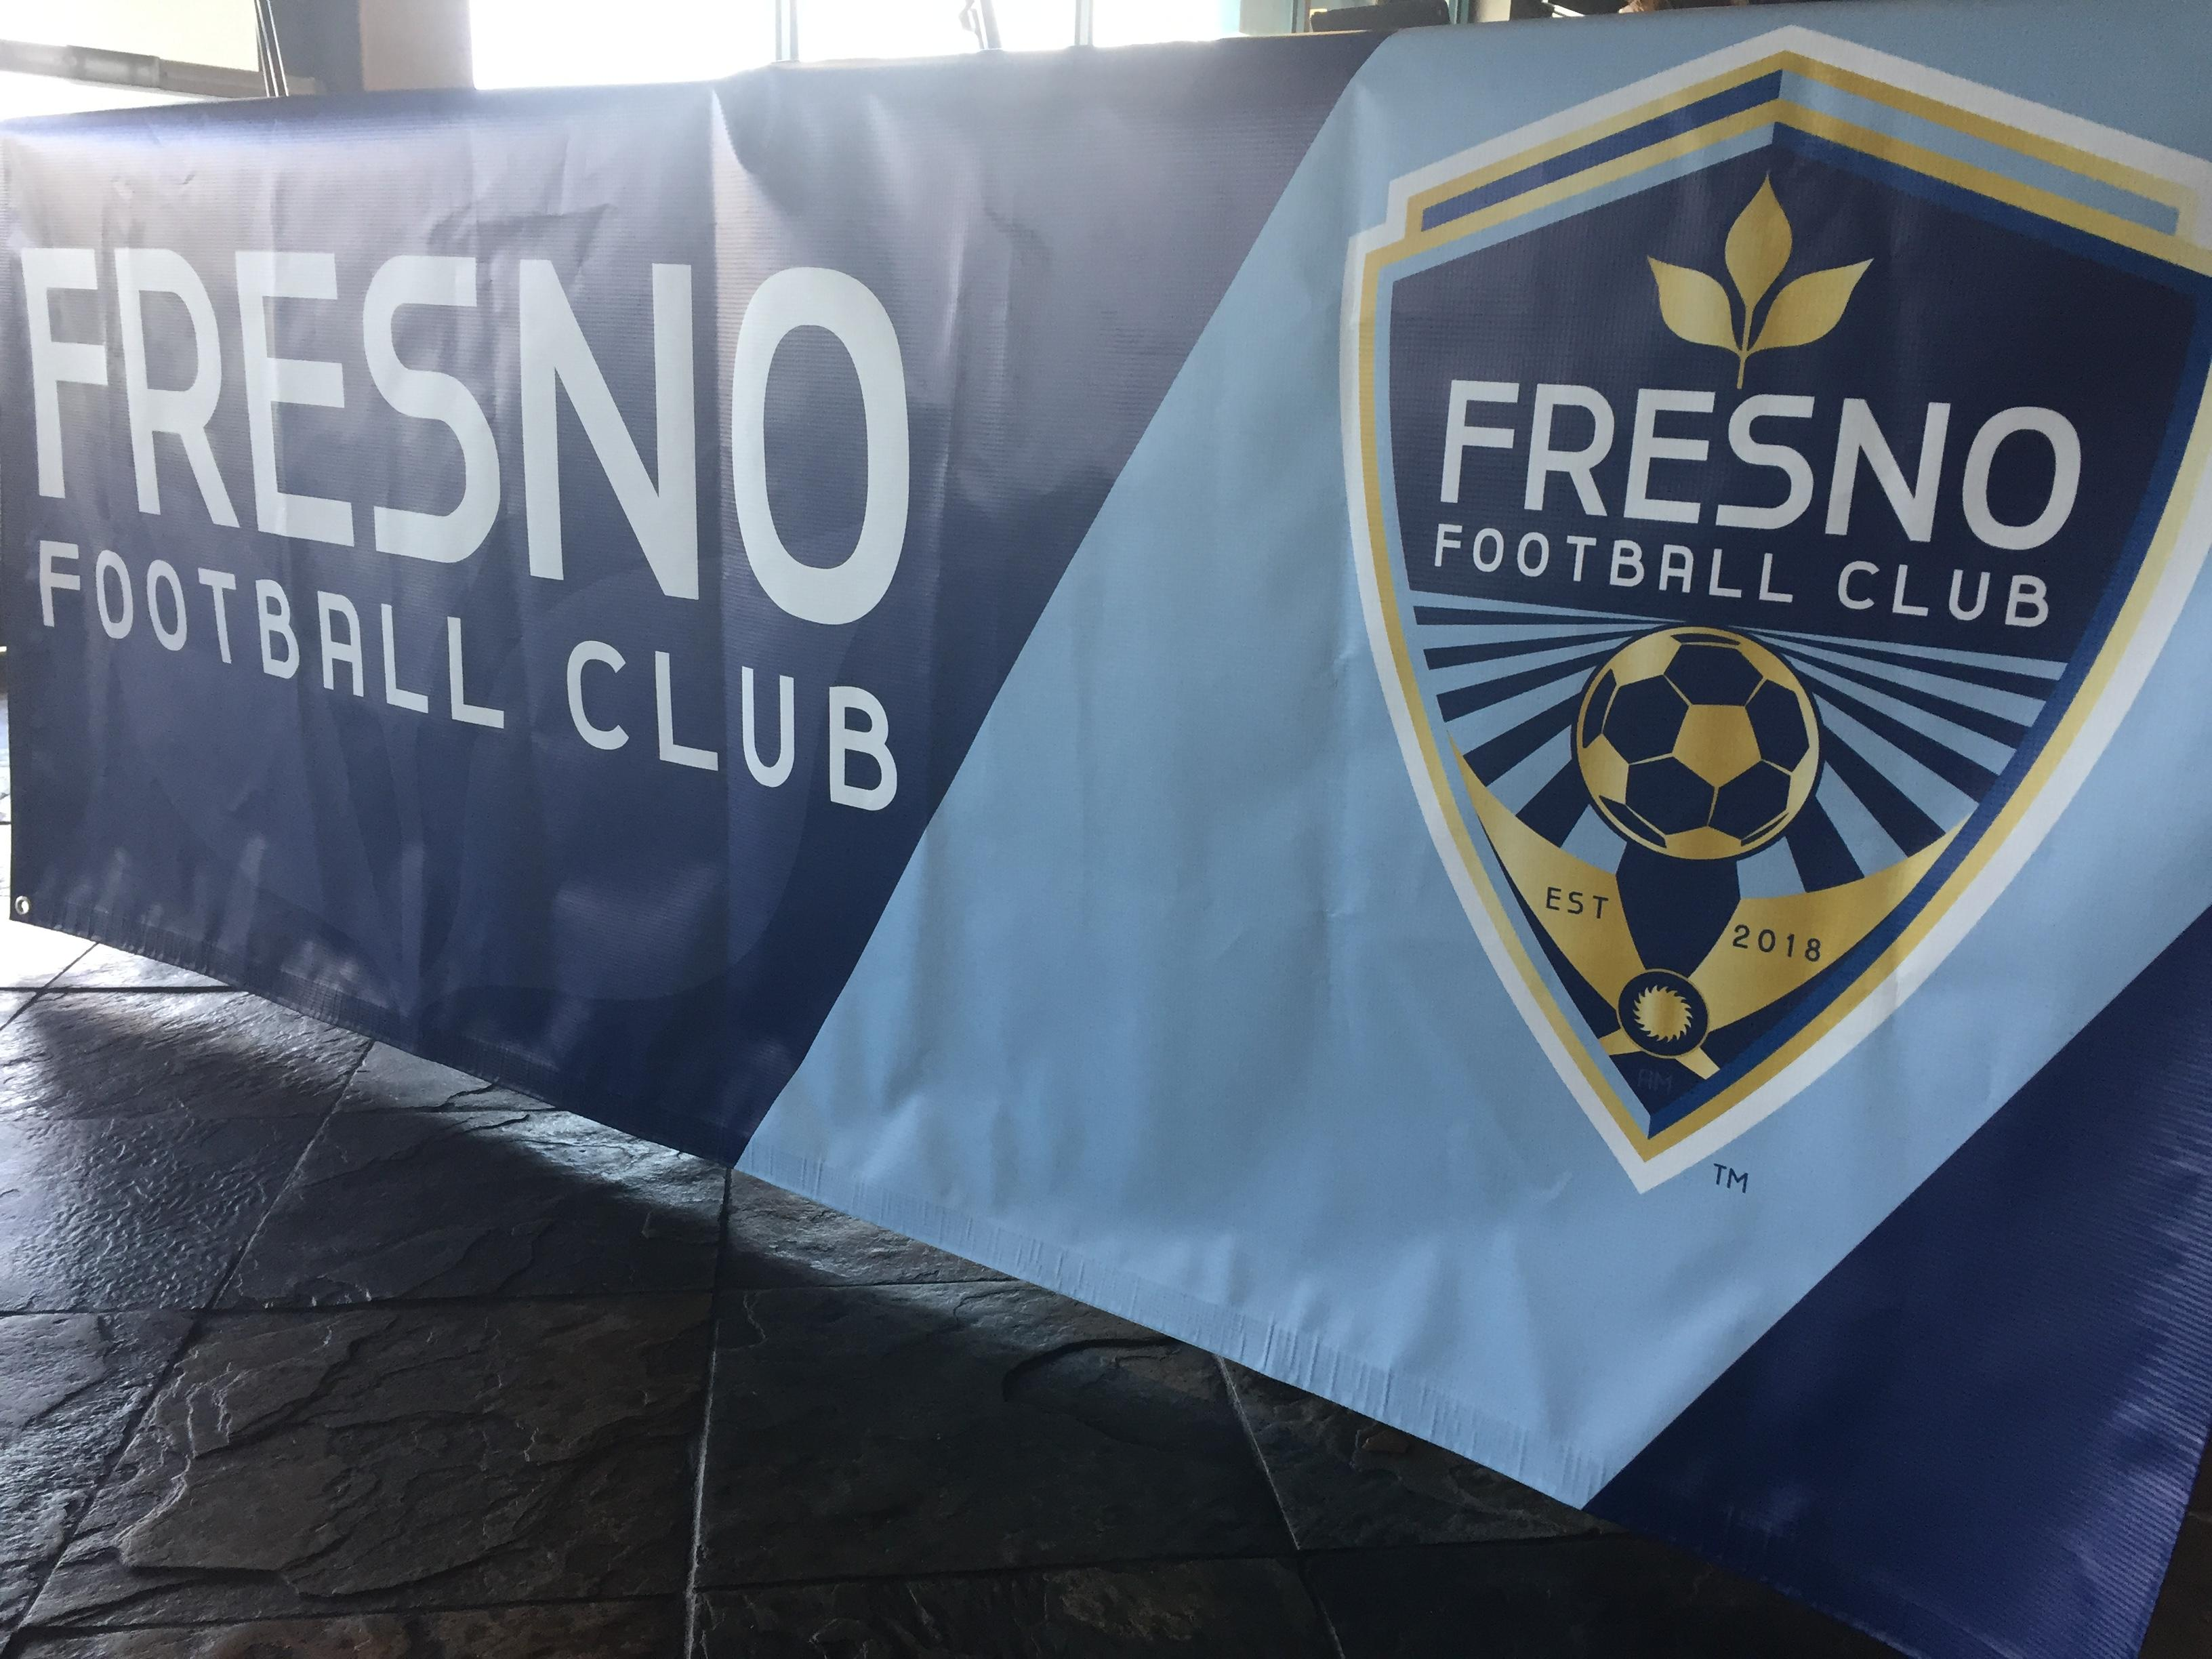 The Fresno FC crest is designed with Fresno and the Central Valley in mind. As explained by General Manager Frank Yallop, there are crop lines for agriculture, and then, like the city flag, an ash tree leaf, a sun and light blue coloring.